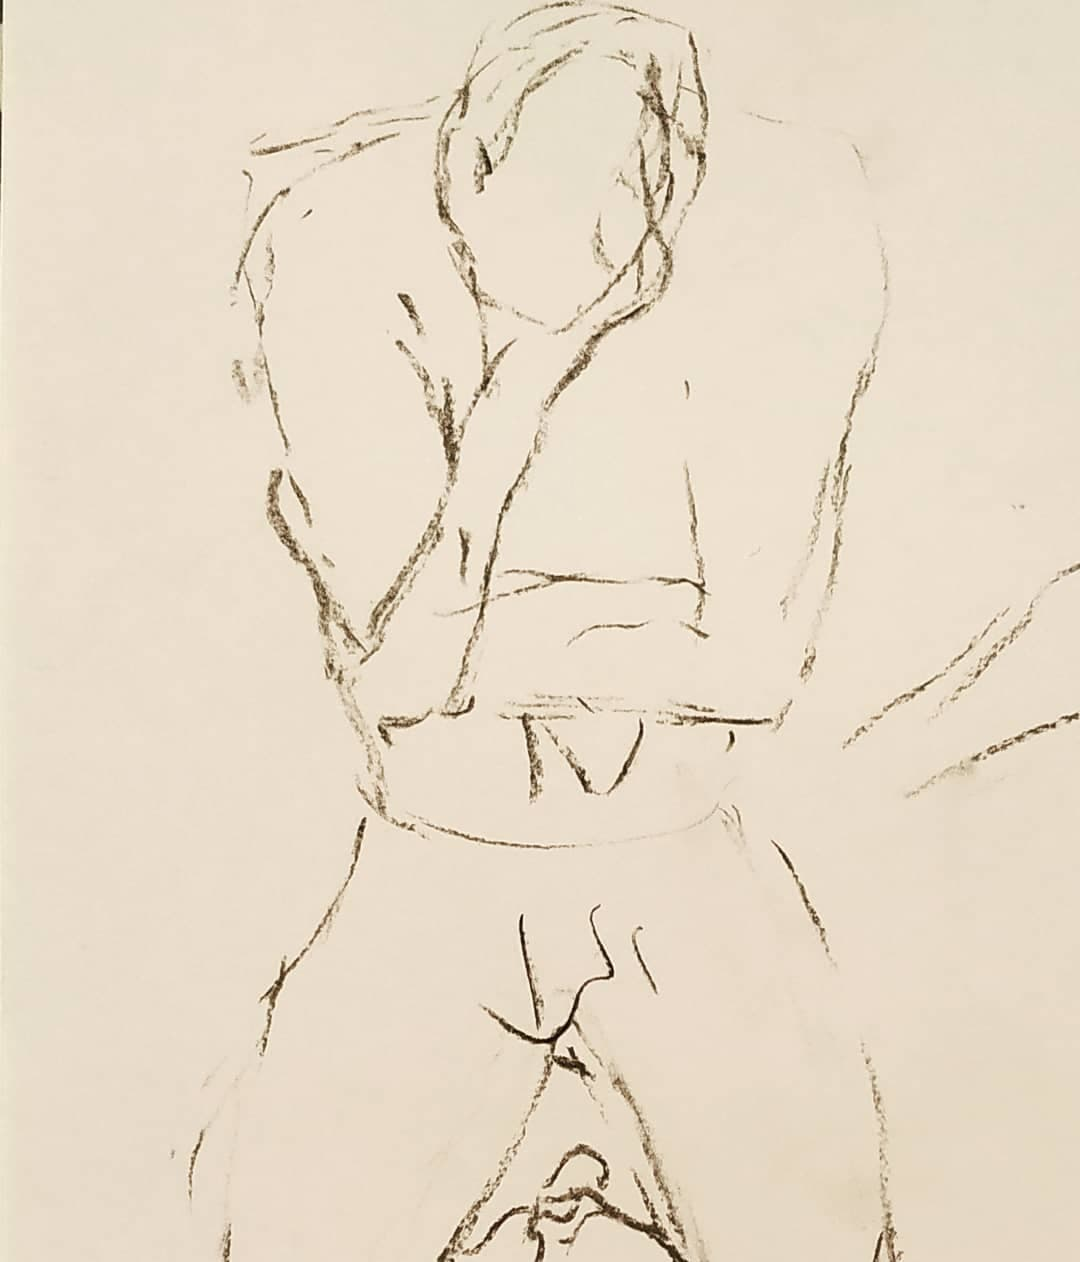 despair life drawing model pose charcoal, the curfew bath